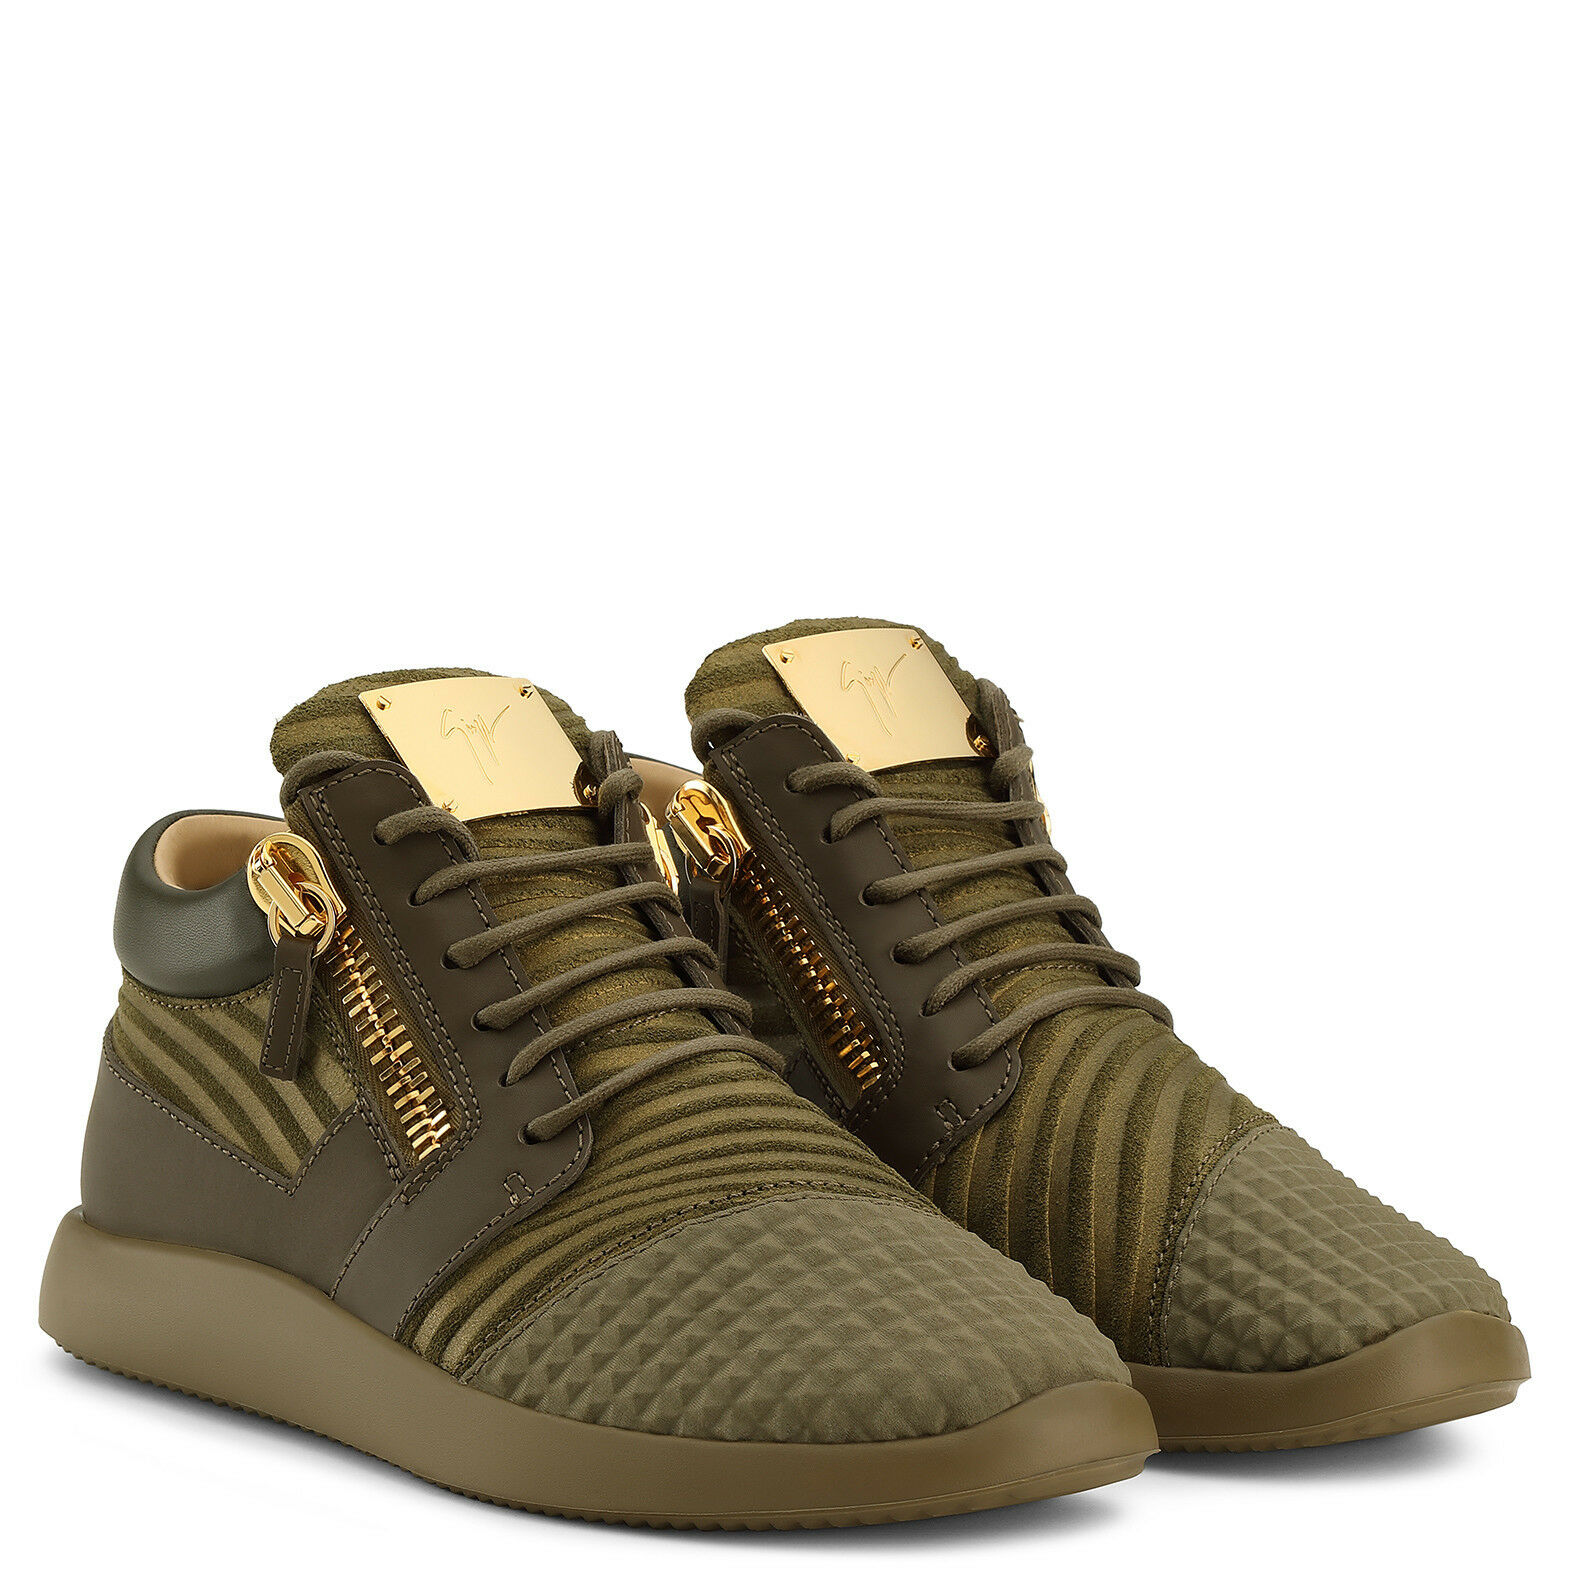 Giuseppe Zanotti Runners- Khaki with gold Plaque and Zip